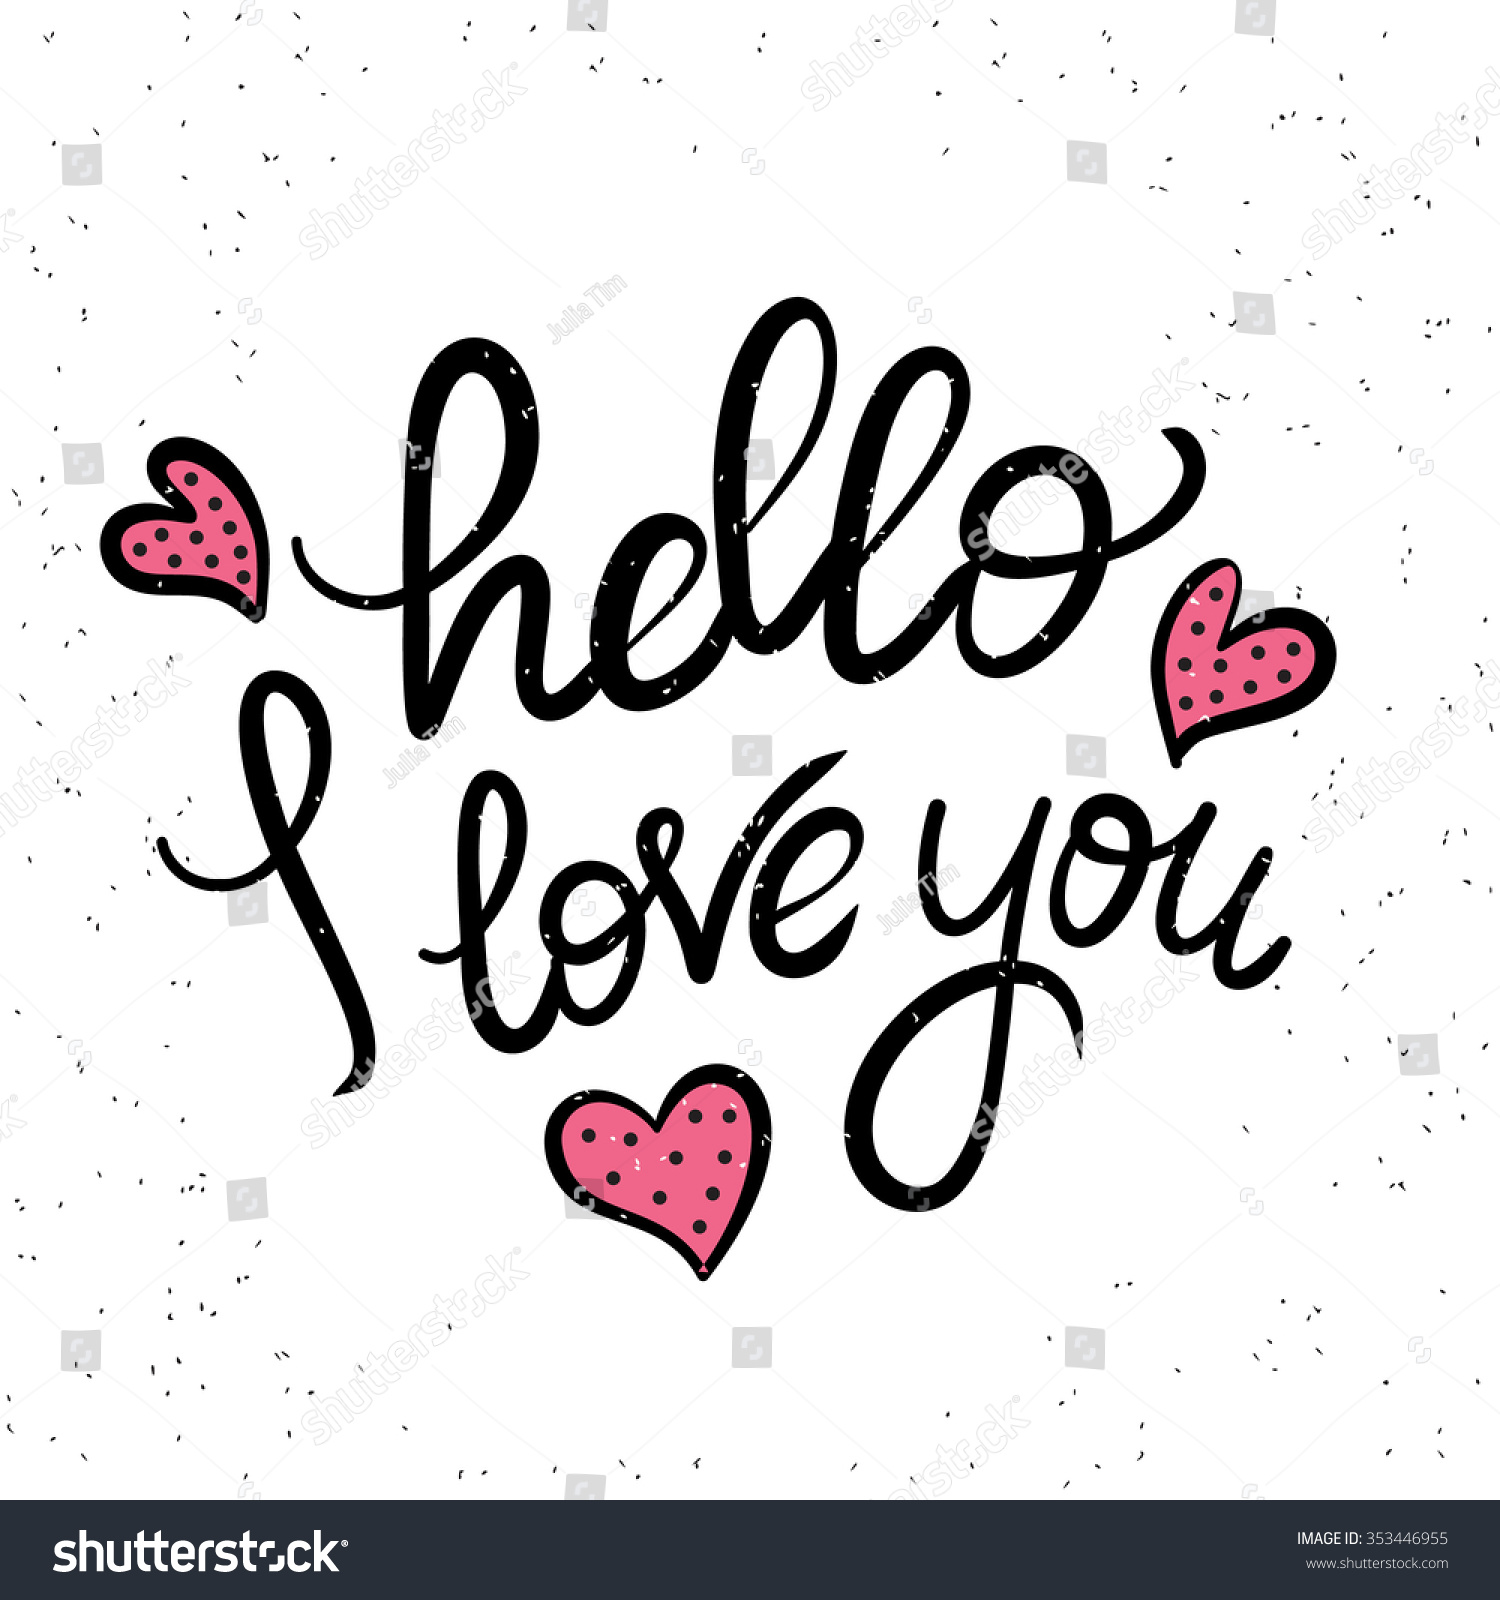 Royalty free hello i love you handwritten design